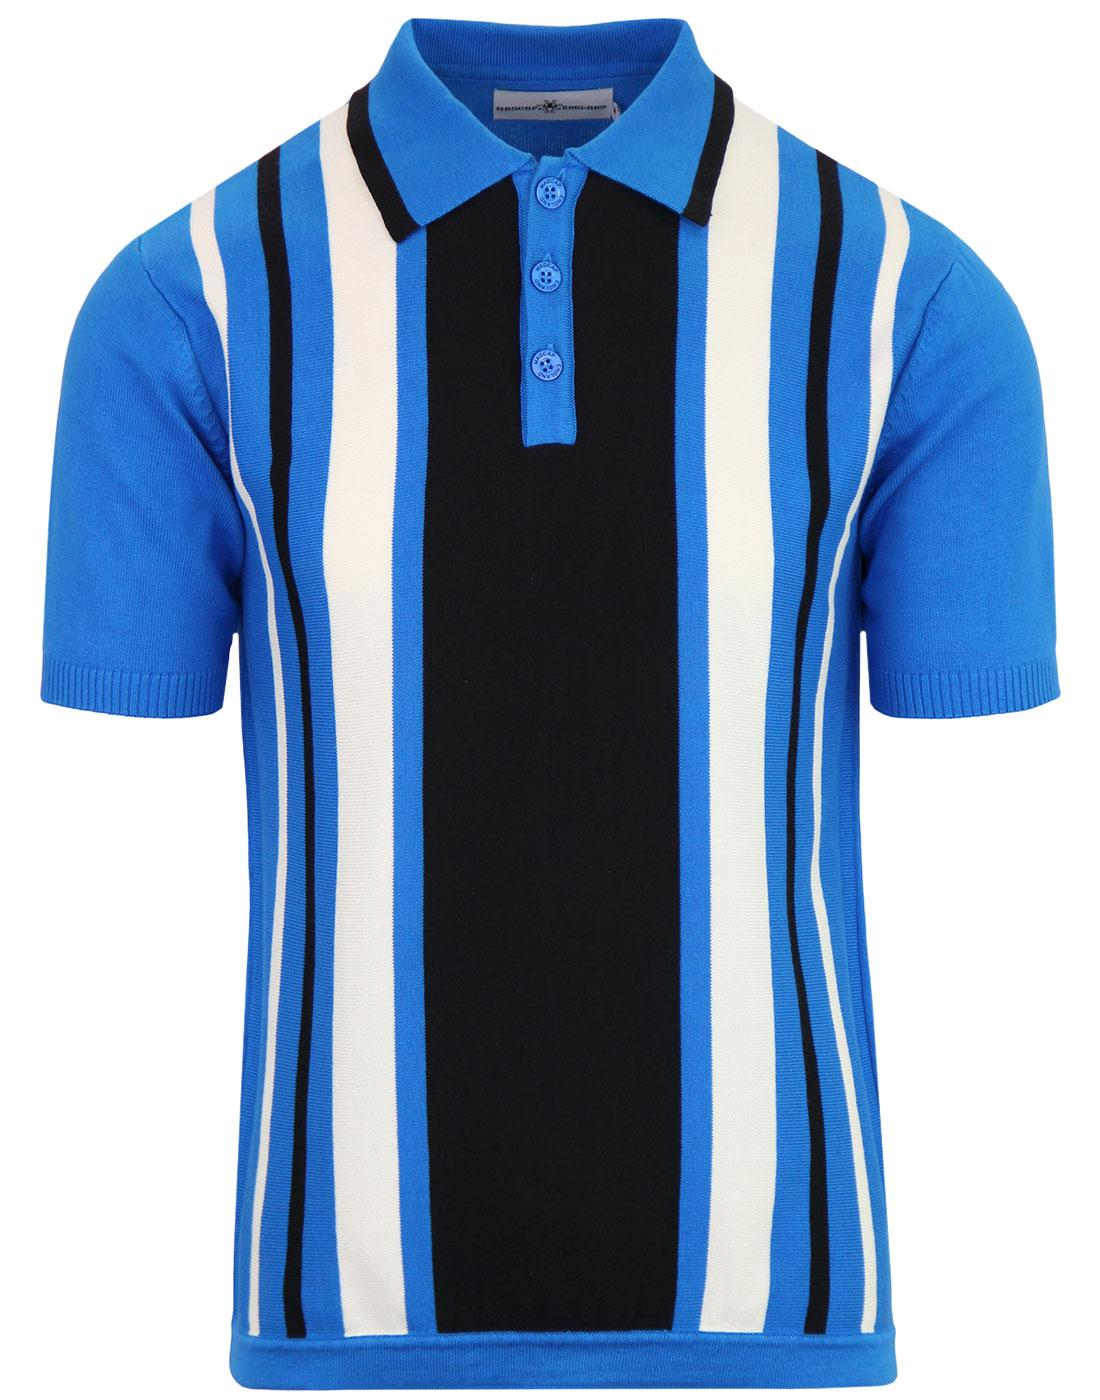 Folklore MADCAP ENGLAND Mod Stripe Knit Polo BLUE